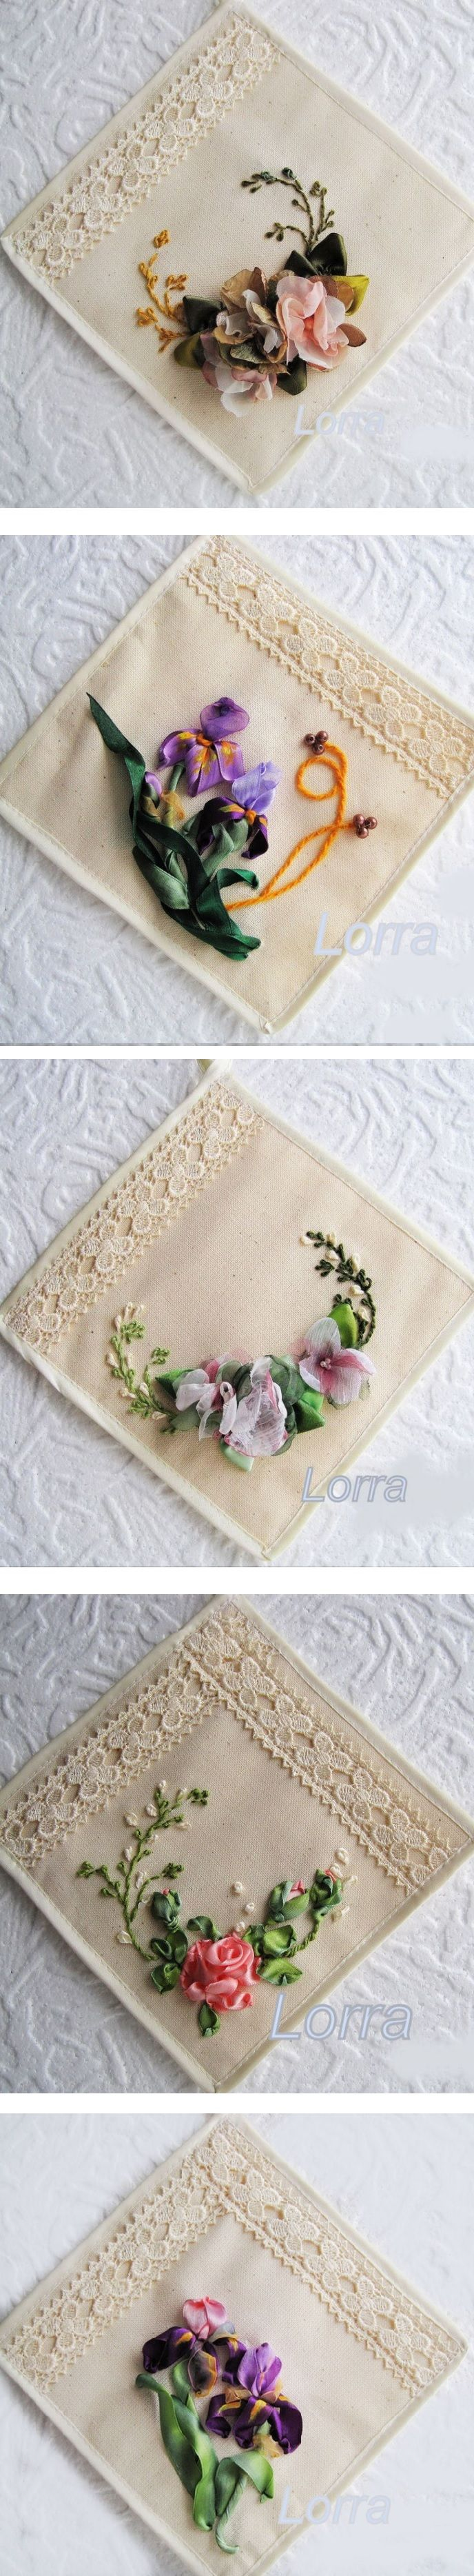 Neat idea for handmade coasters or small table mats - love the use of ribbonwork, simple embroidery stitches and handmade flowers for decorating! :)